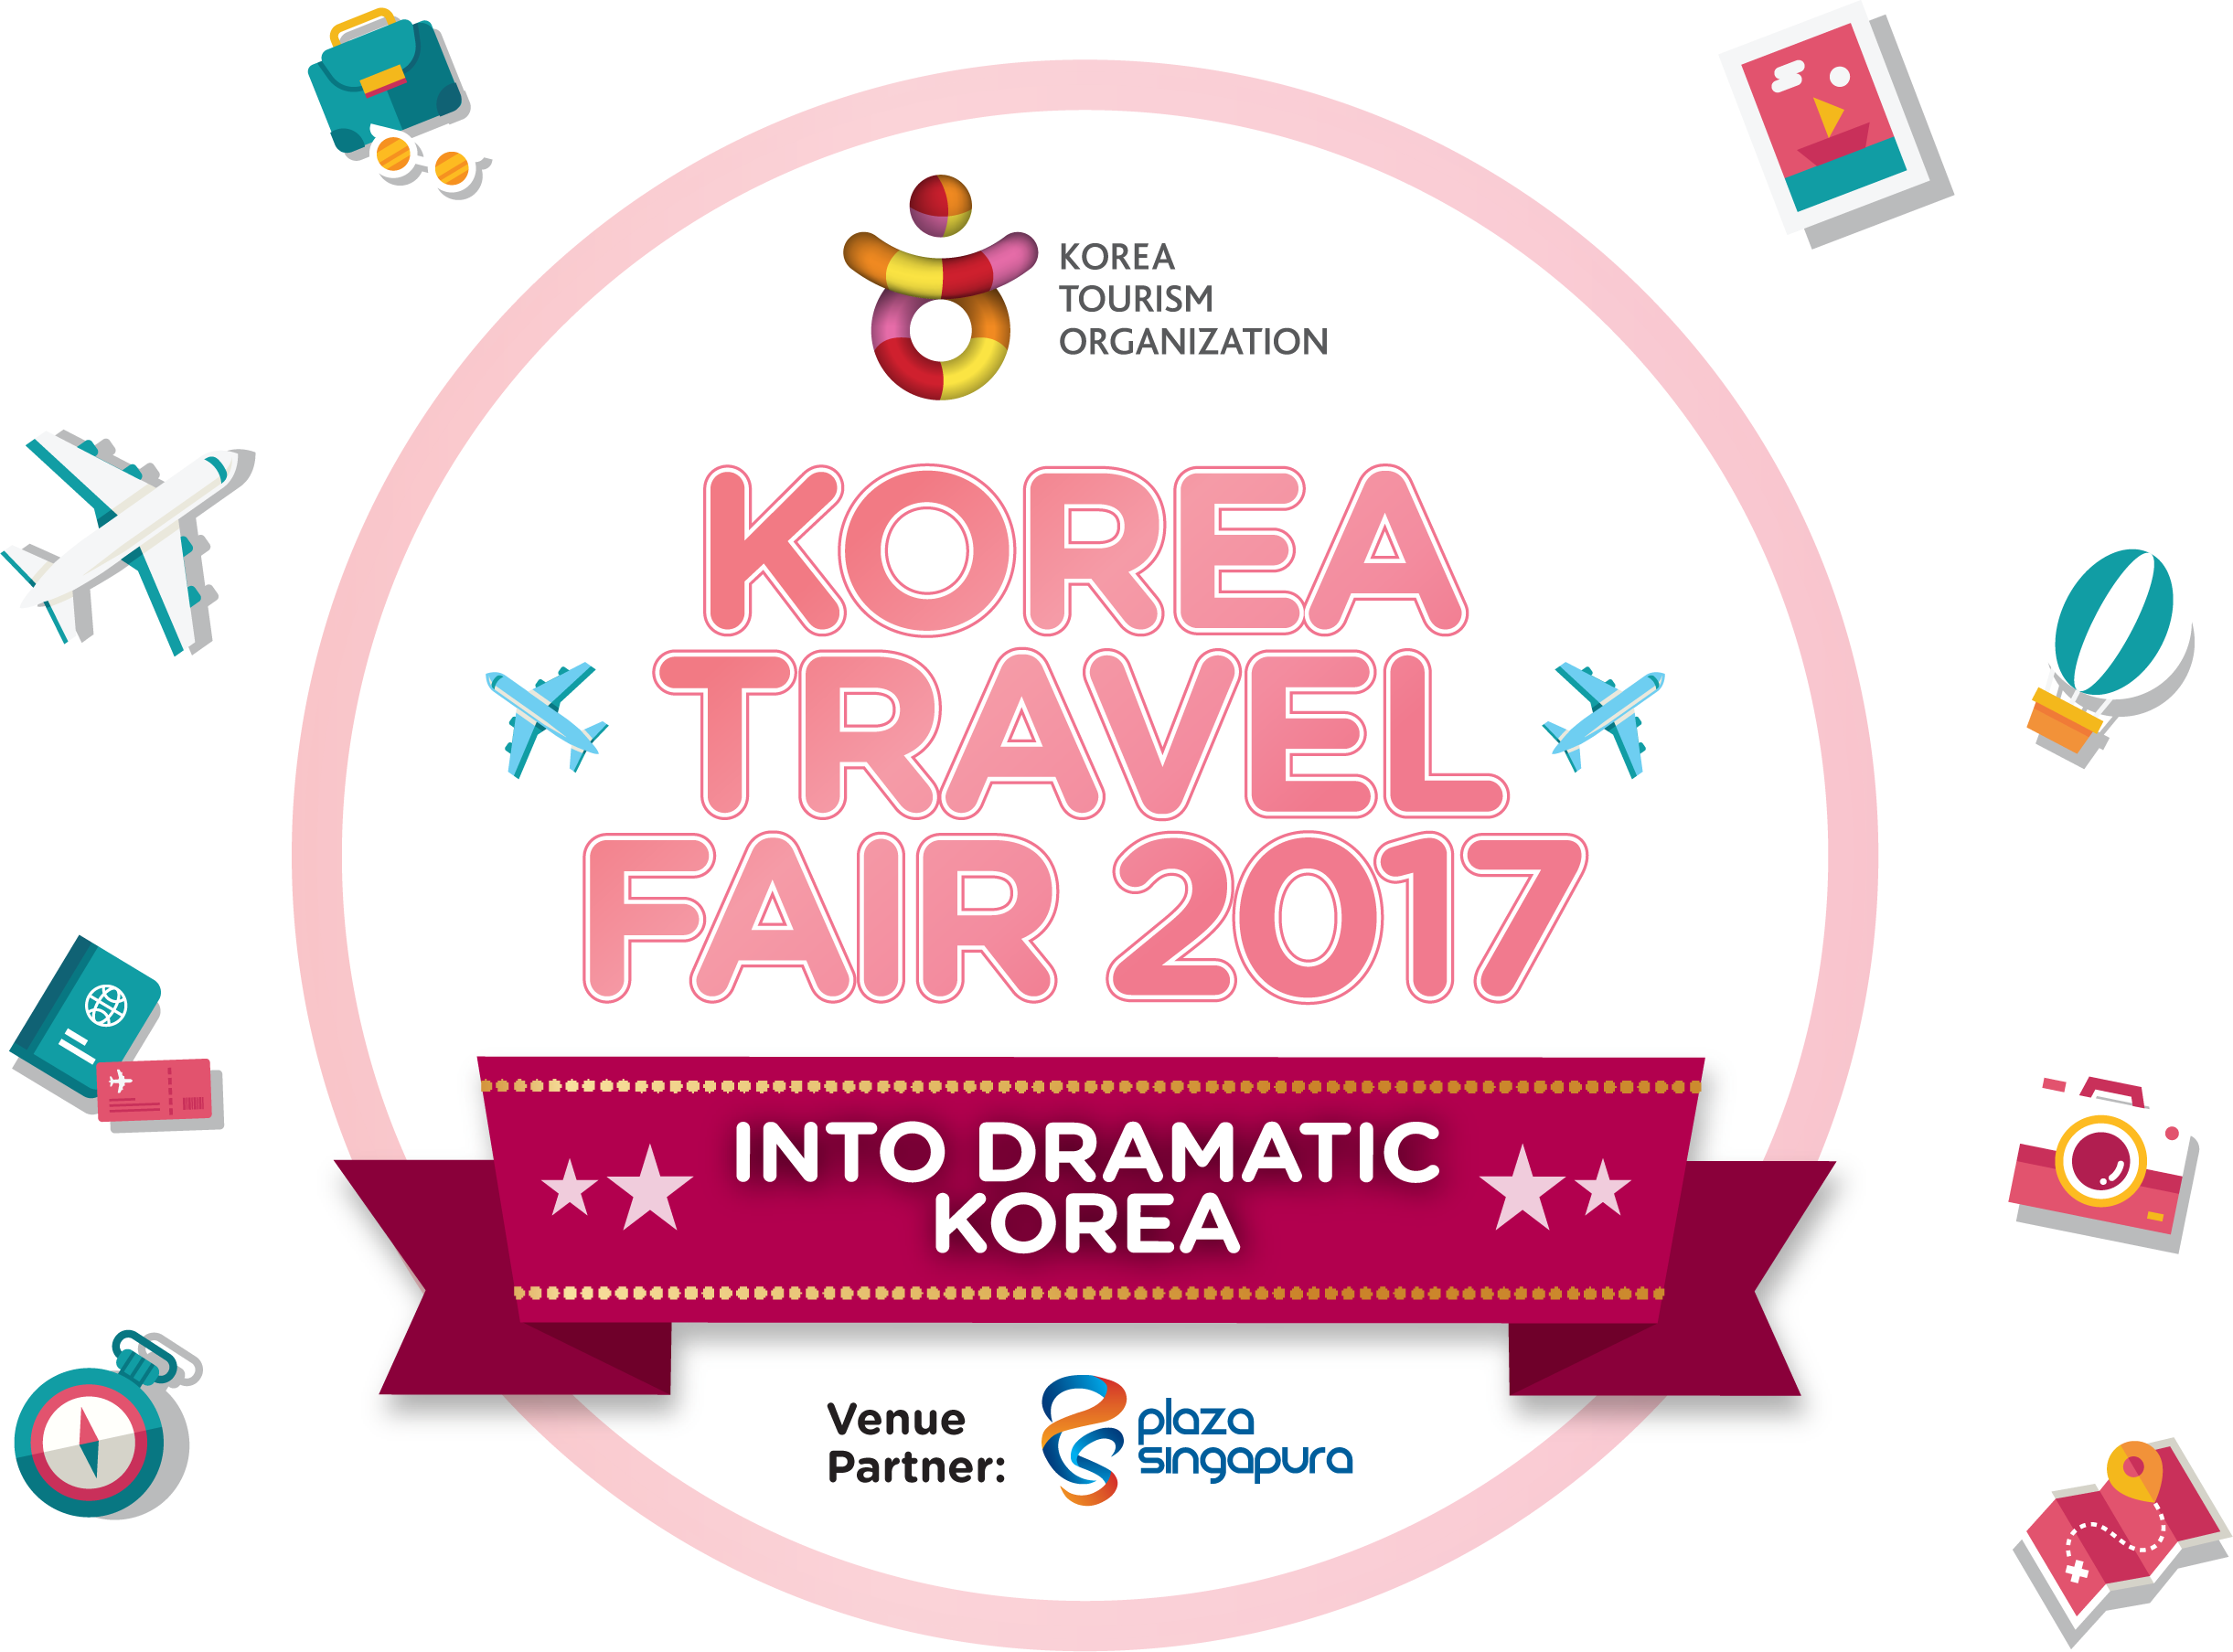 Korea Travel Fair 2017